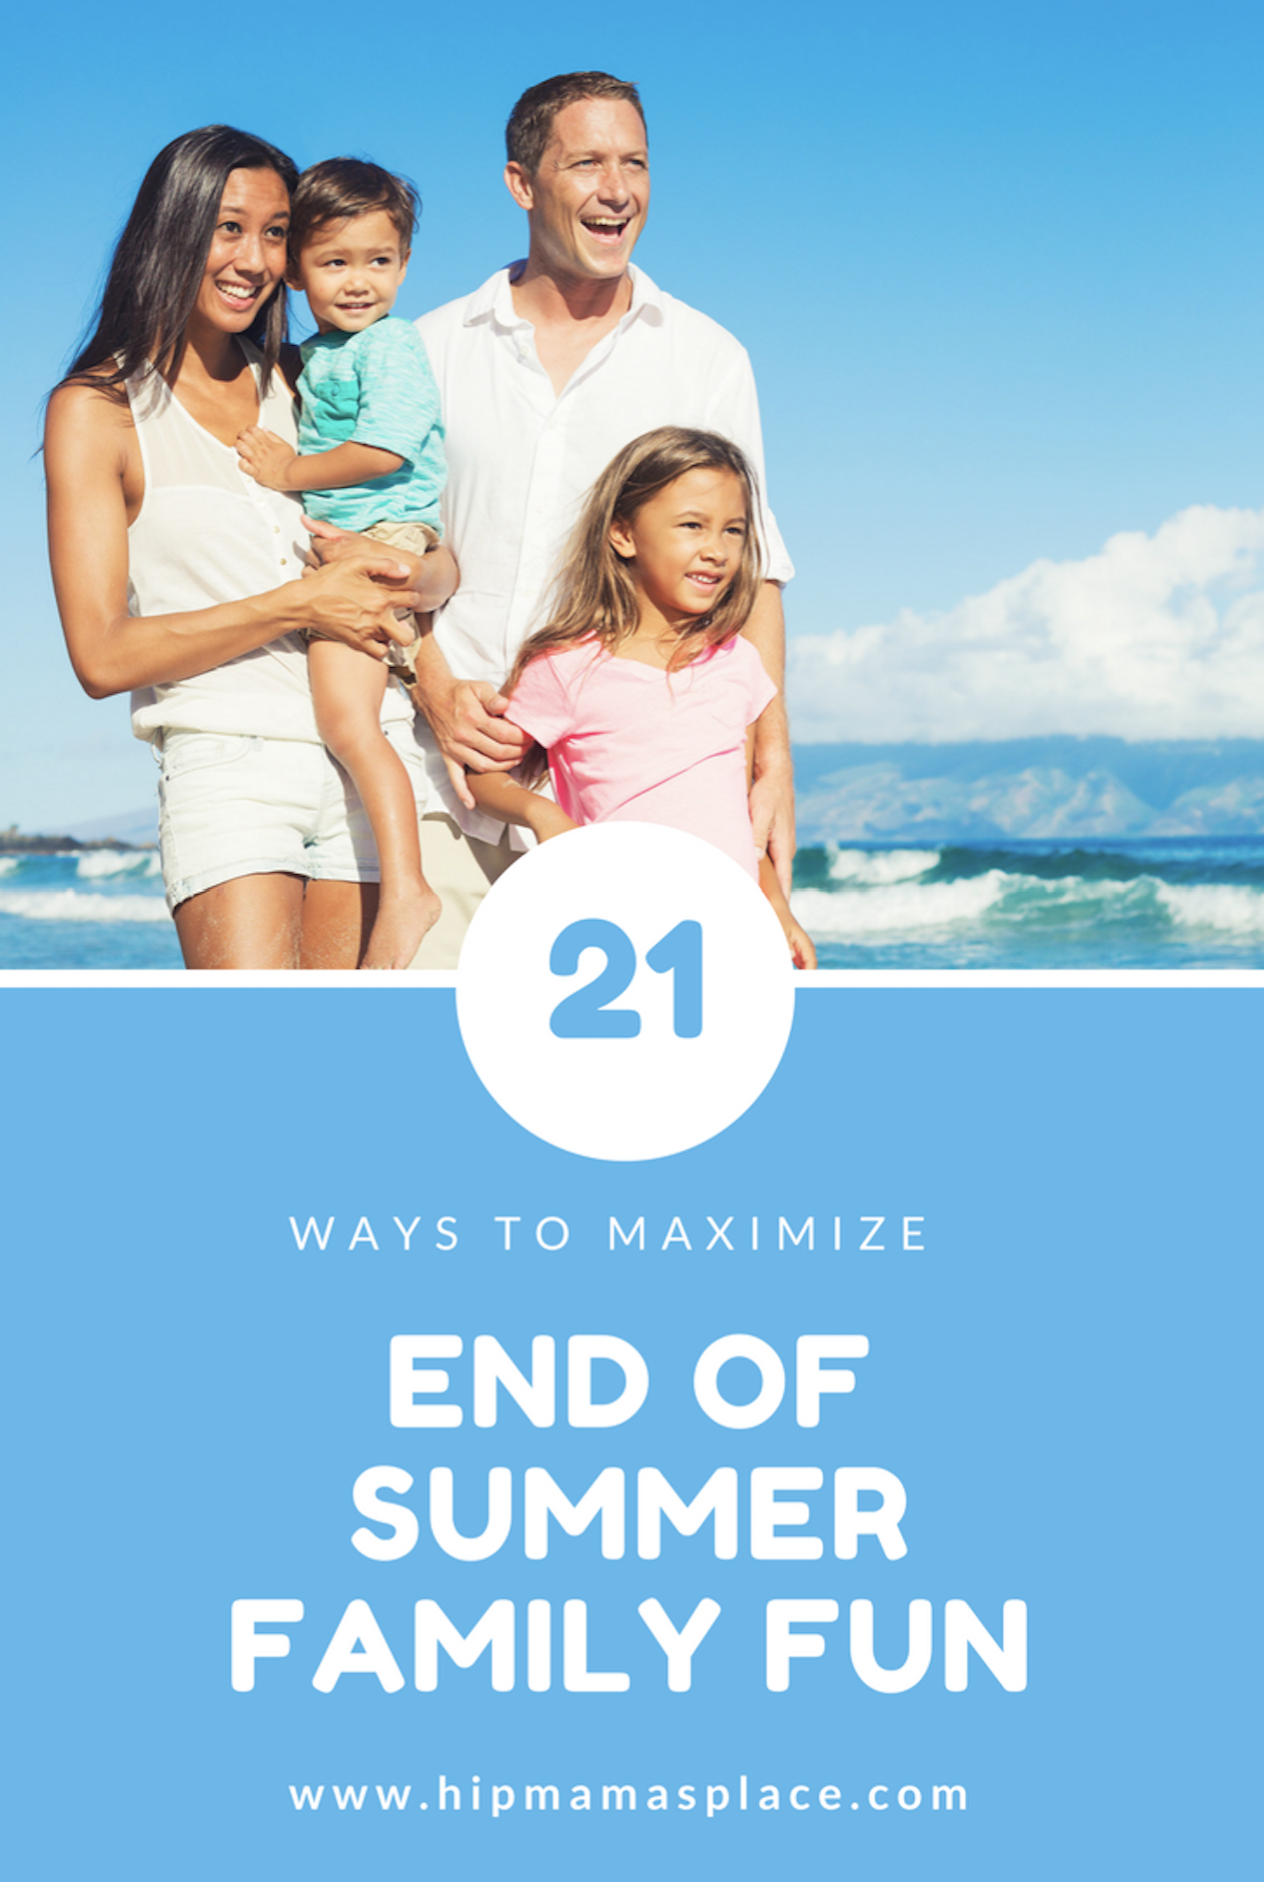 21 Fun Ways To End The Summer With Your Family